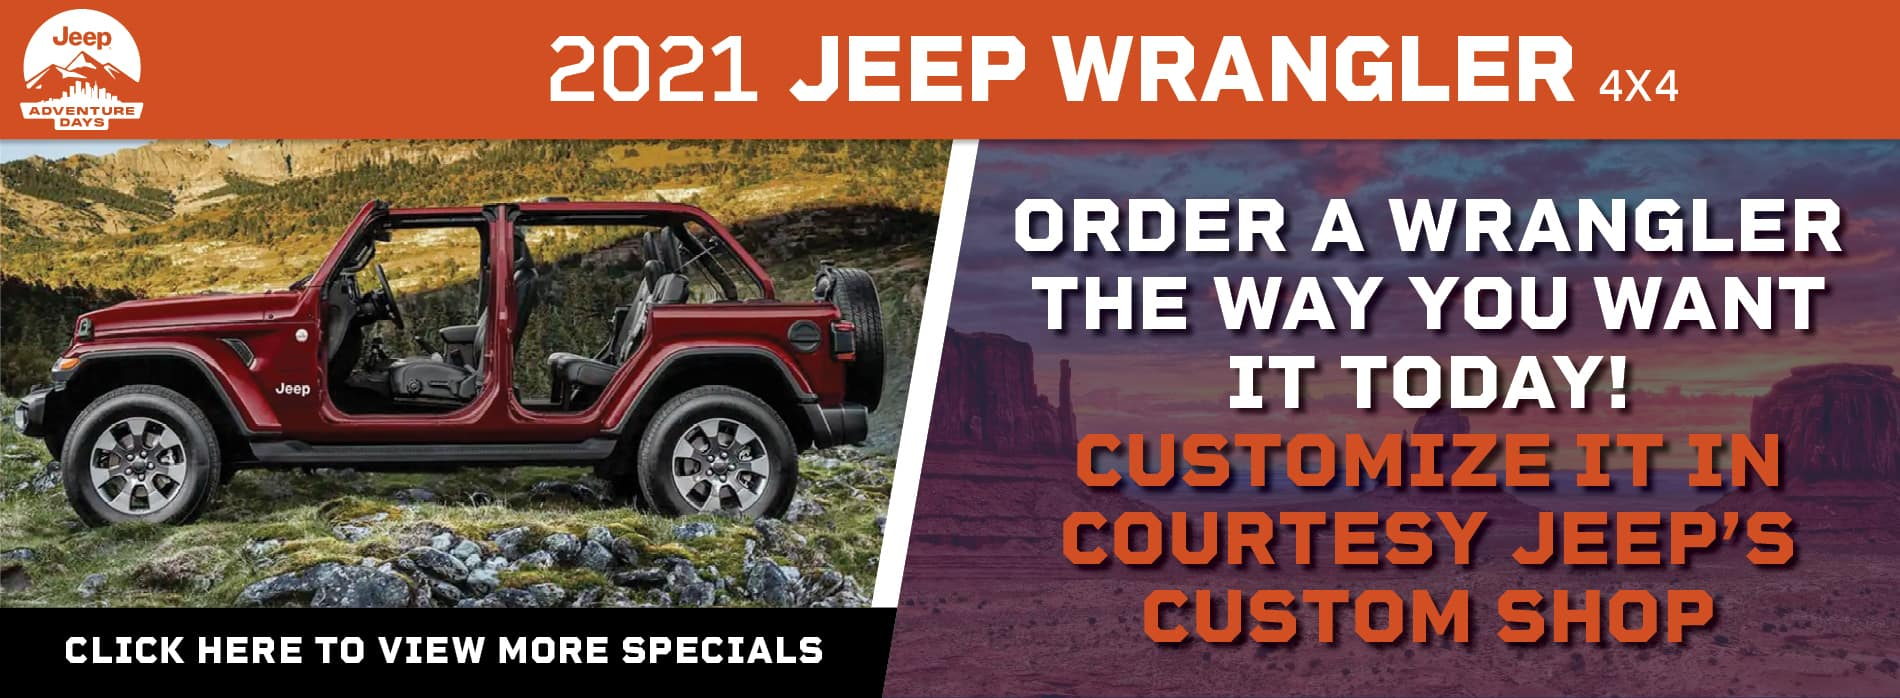 090921 Jeep Banners2